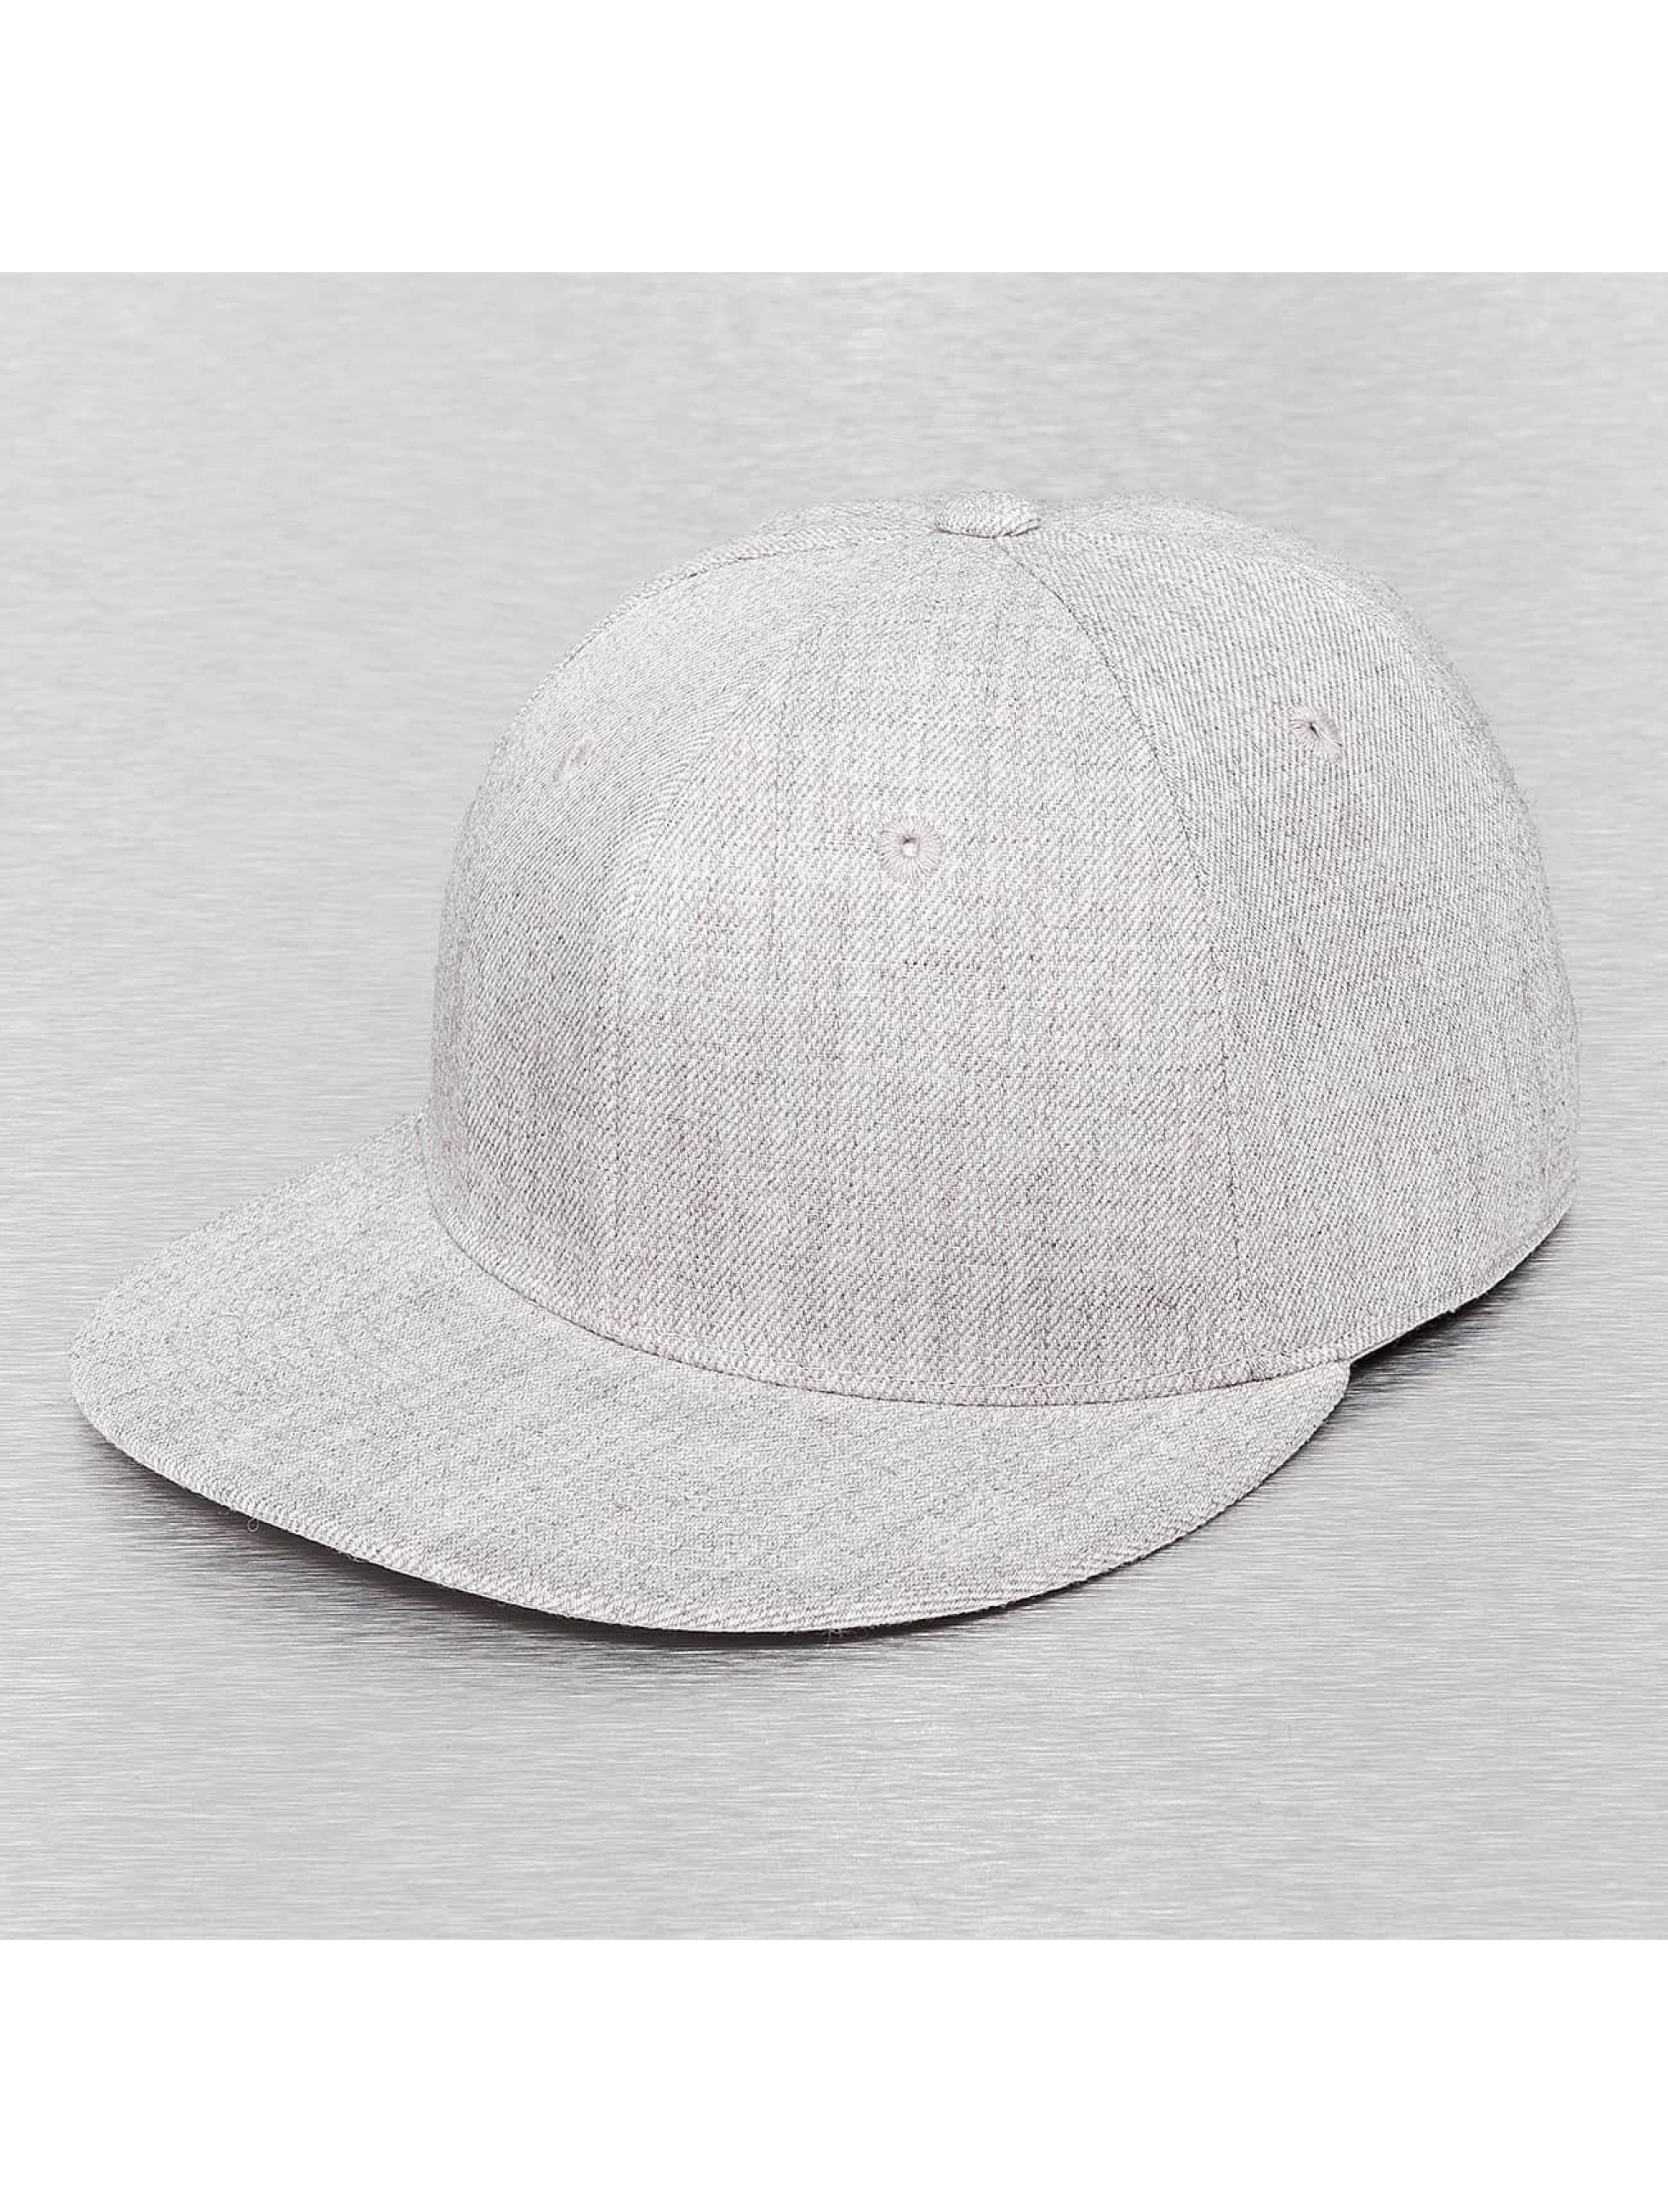 Decky USA Männer,Frauen Fitted Cap Retro Fitted in grau